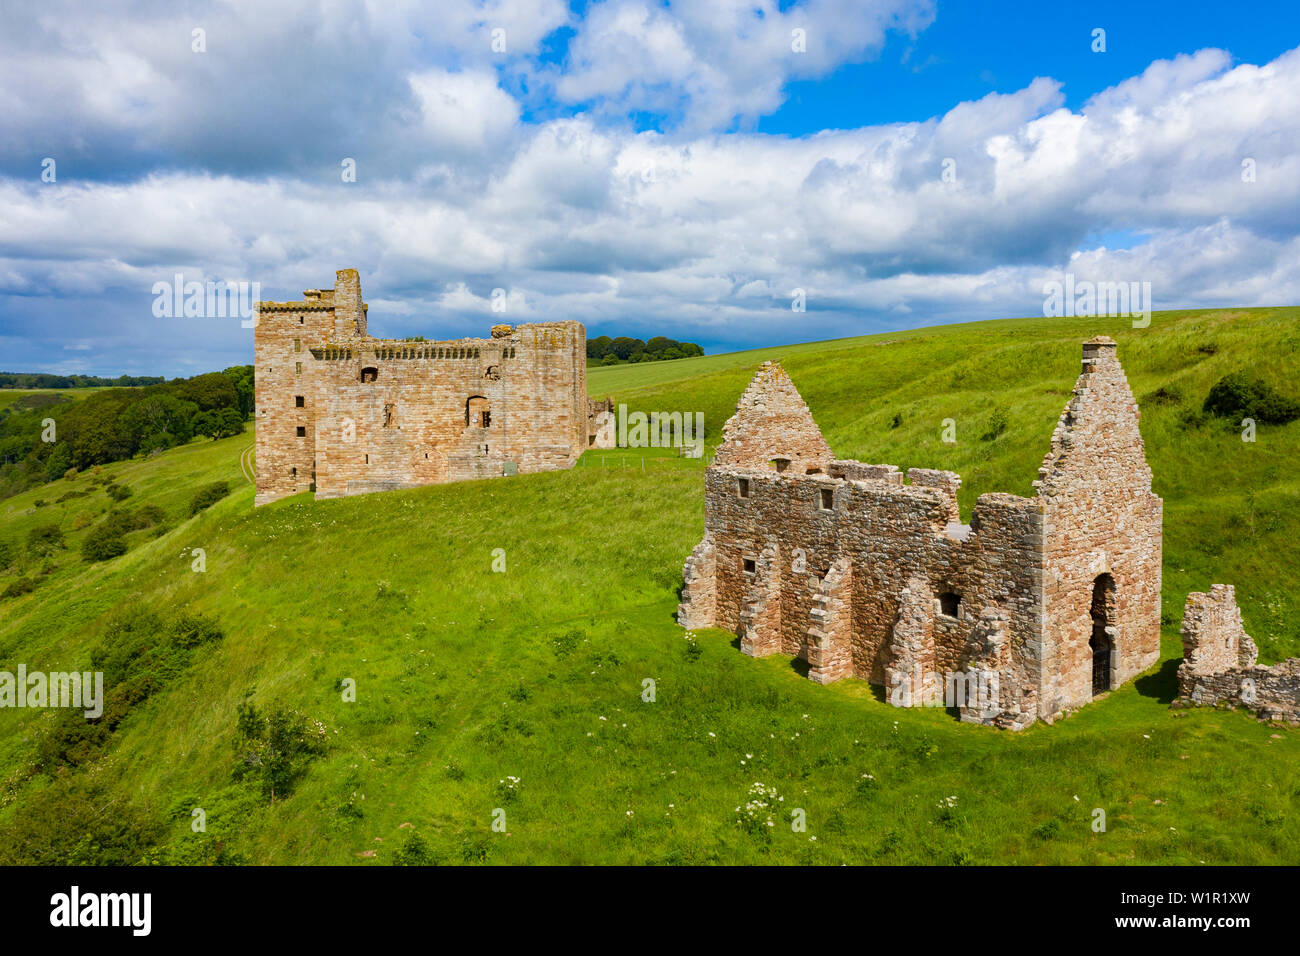 Elevated view of 14th century Crichton Castle and stables in Midlothian, Scotland, UK - Stock Image